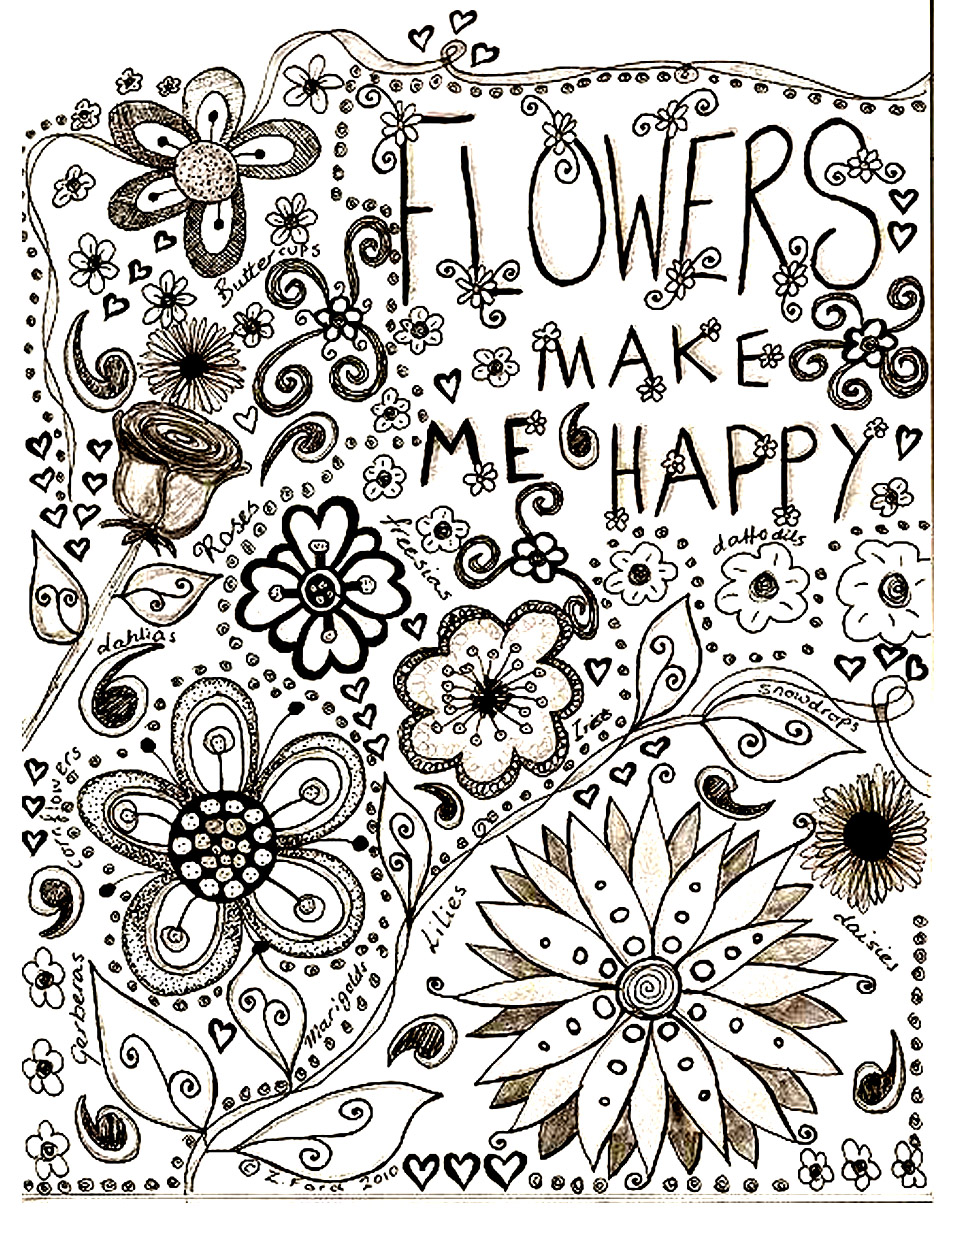 Flowers coloring page to print and color for free